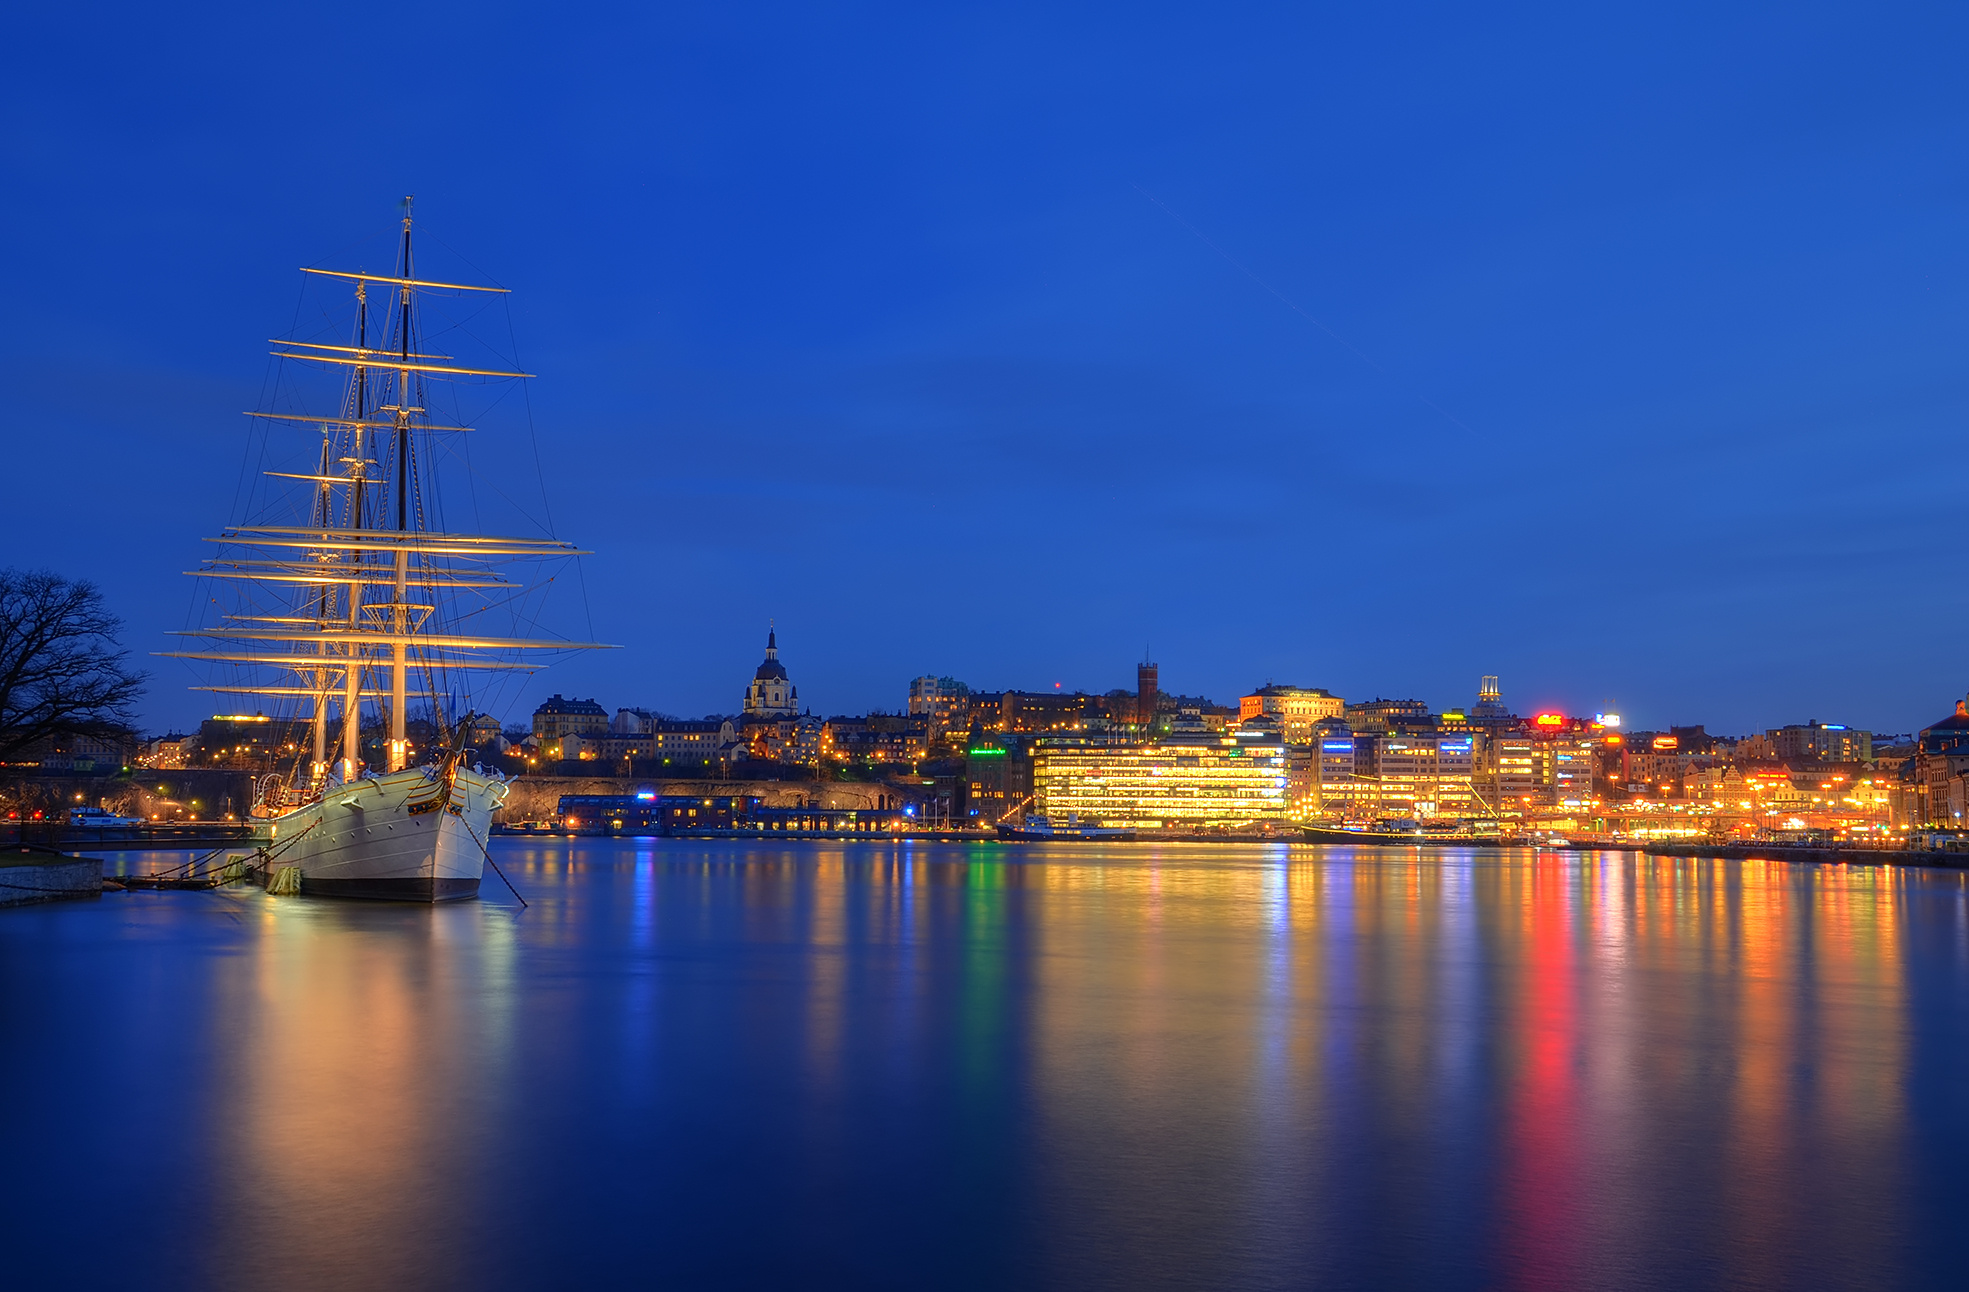 Evening Wallpaper With Quotes Skeppsholmen Stockholm City Night Lights Wallpaper